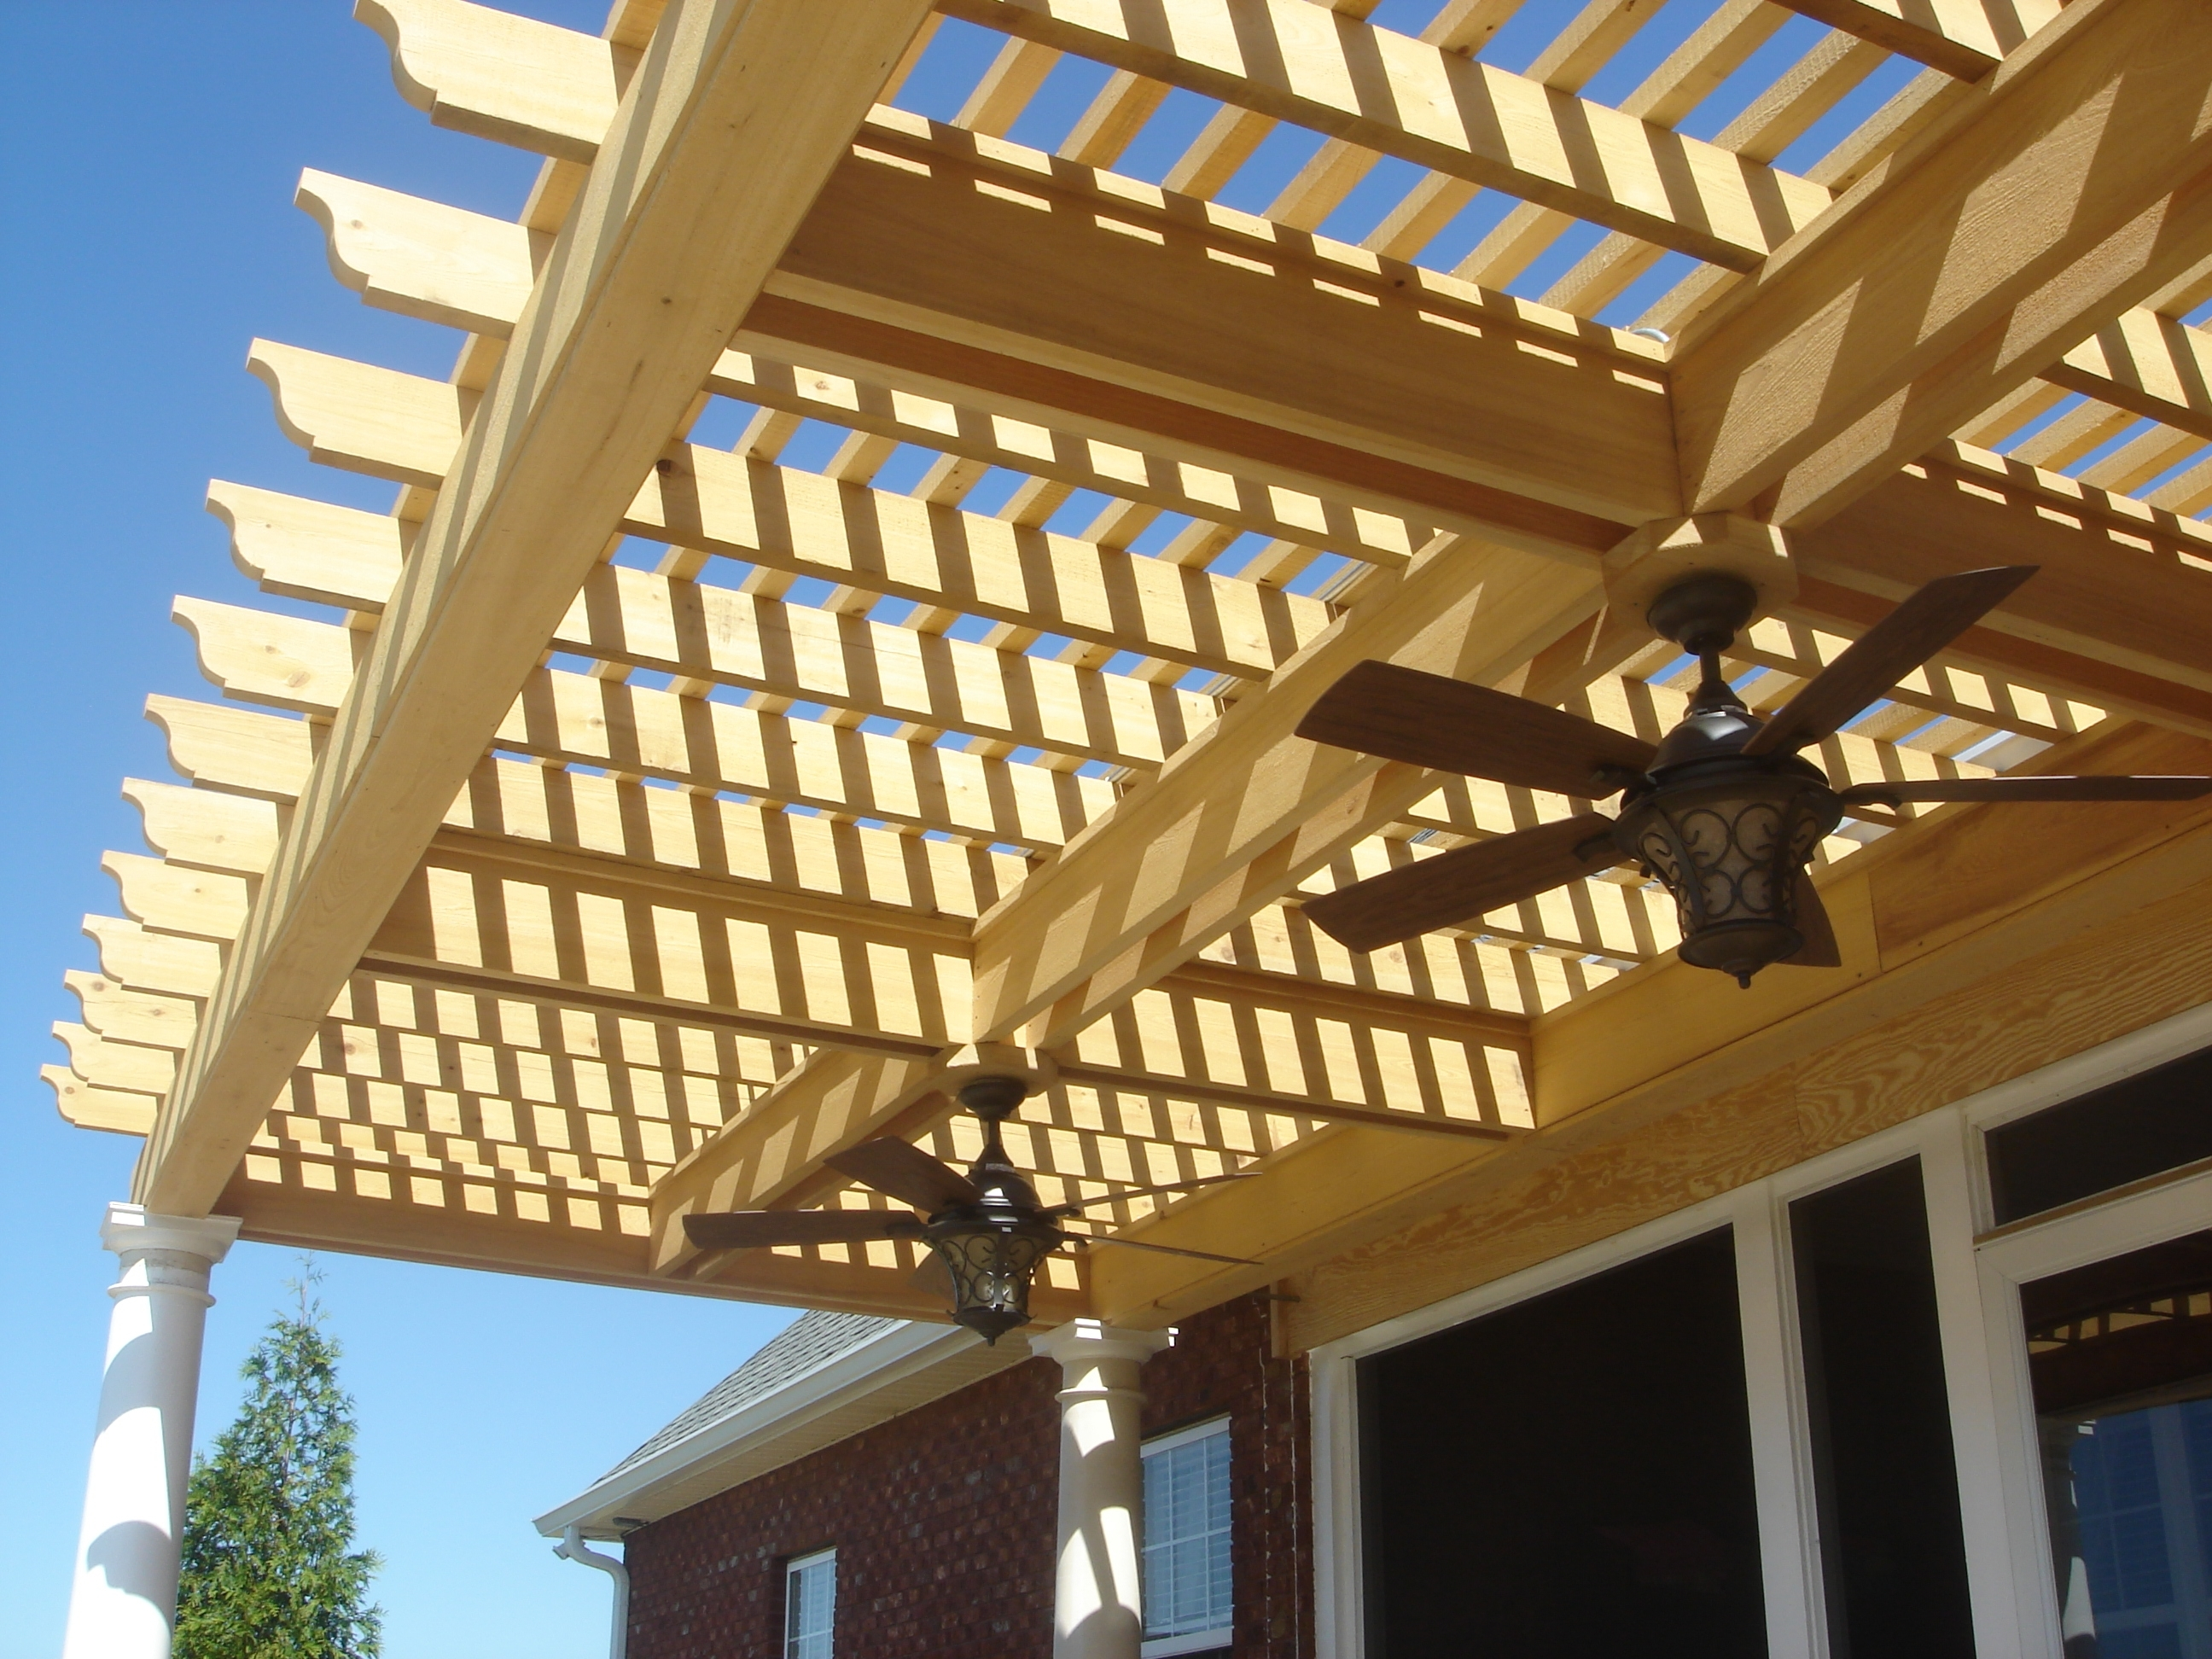 How To Add Lights To A Deck, Screened Porch Or Pergolaarchadeck Regarding Famous Outdoor Ceiling Fans For Screened Porches (Gallery 16 of 20)